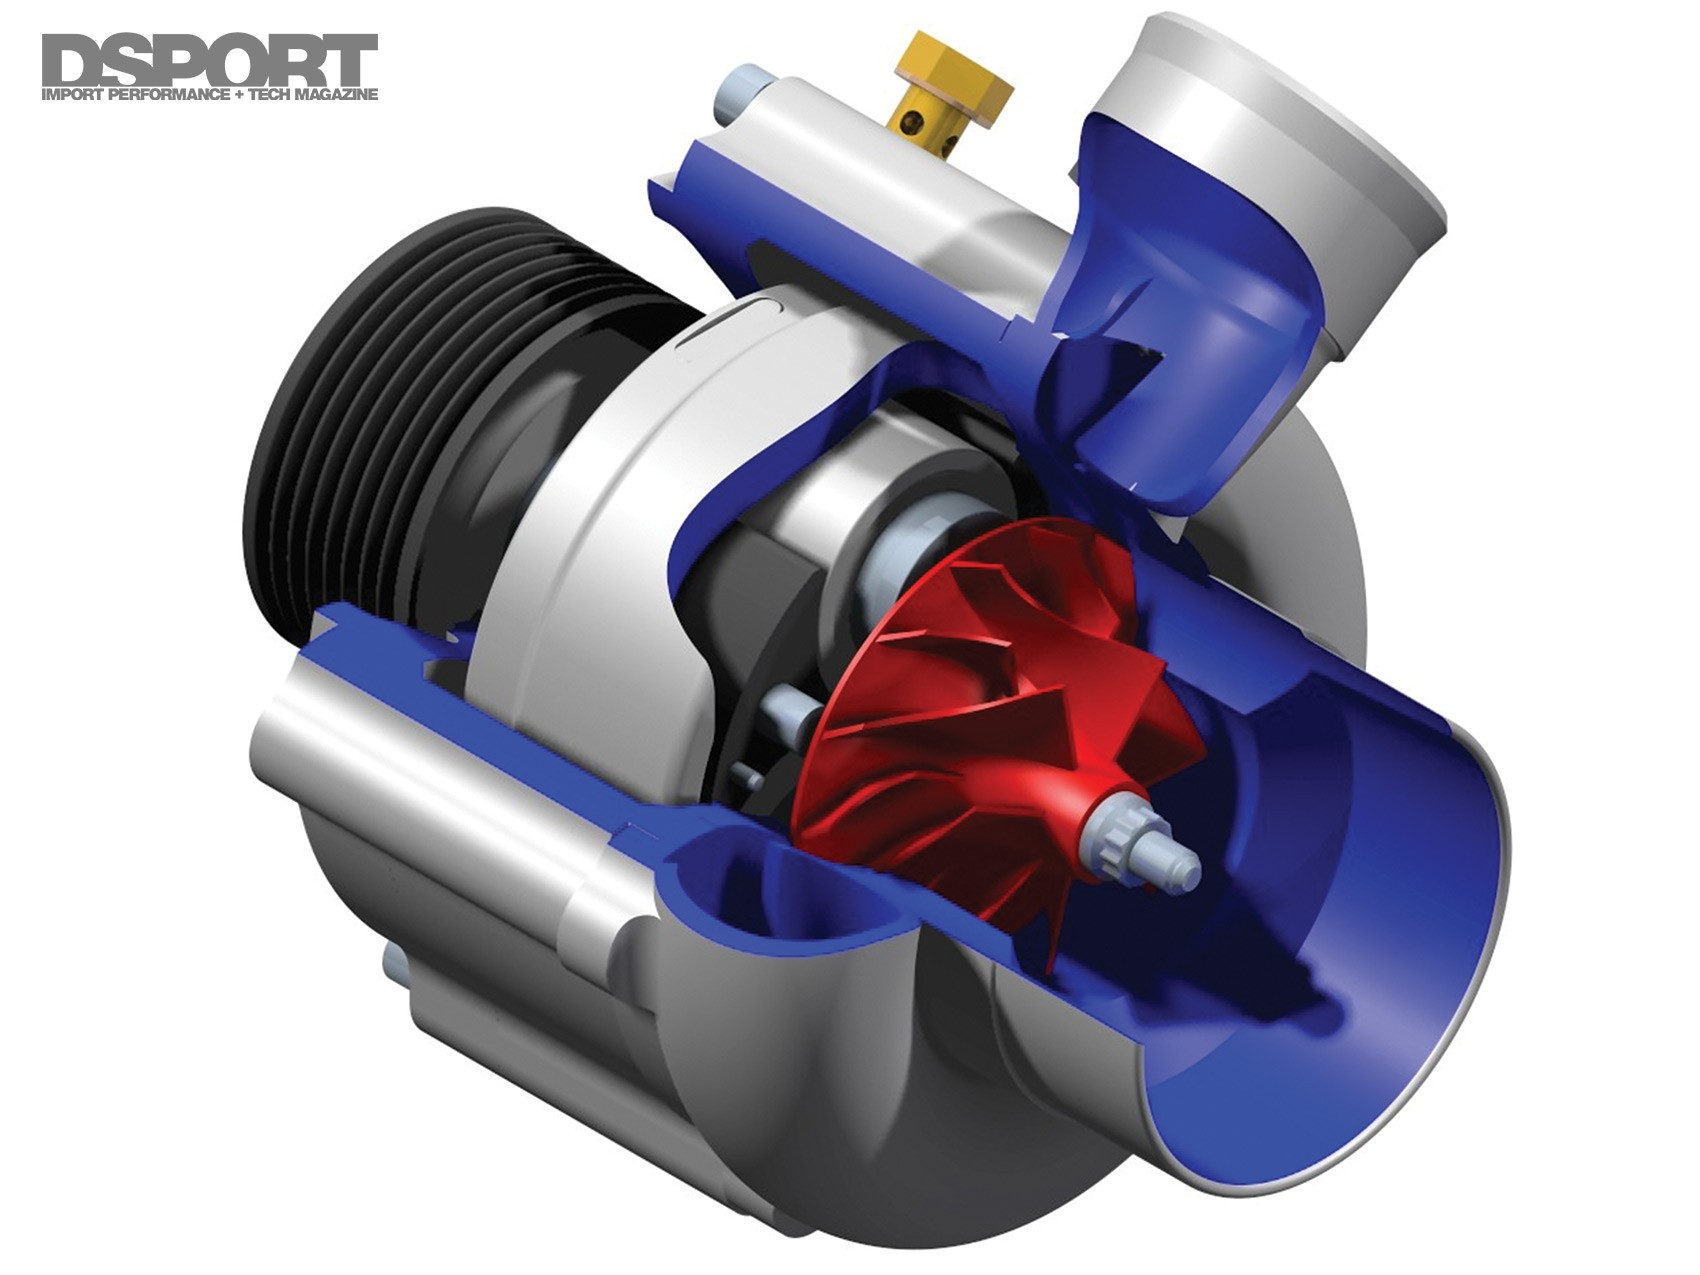 Centrifugal Supercharger Diagram Boost 101 why Boost is Best Of Centrifugal Supercharger Diagram